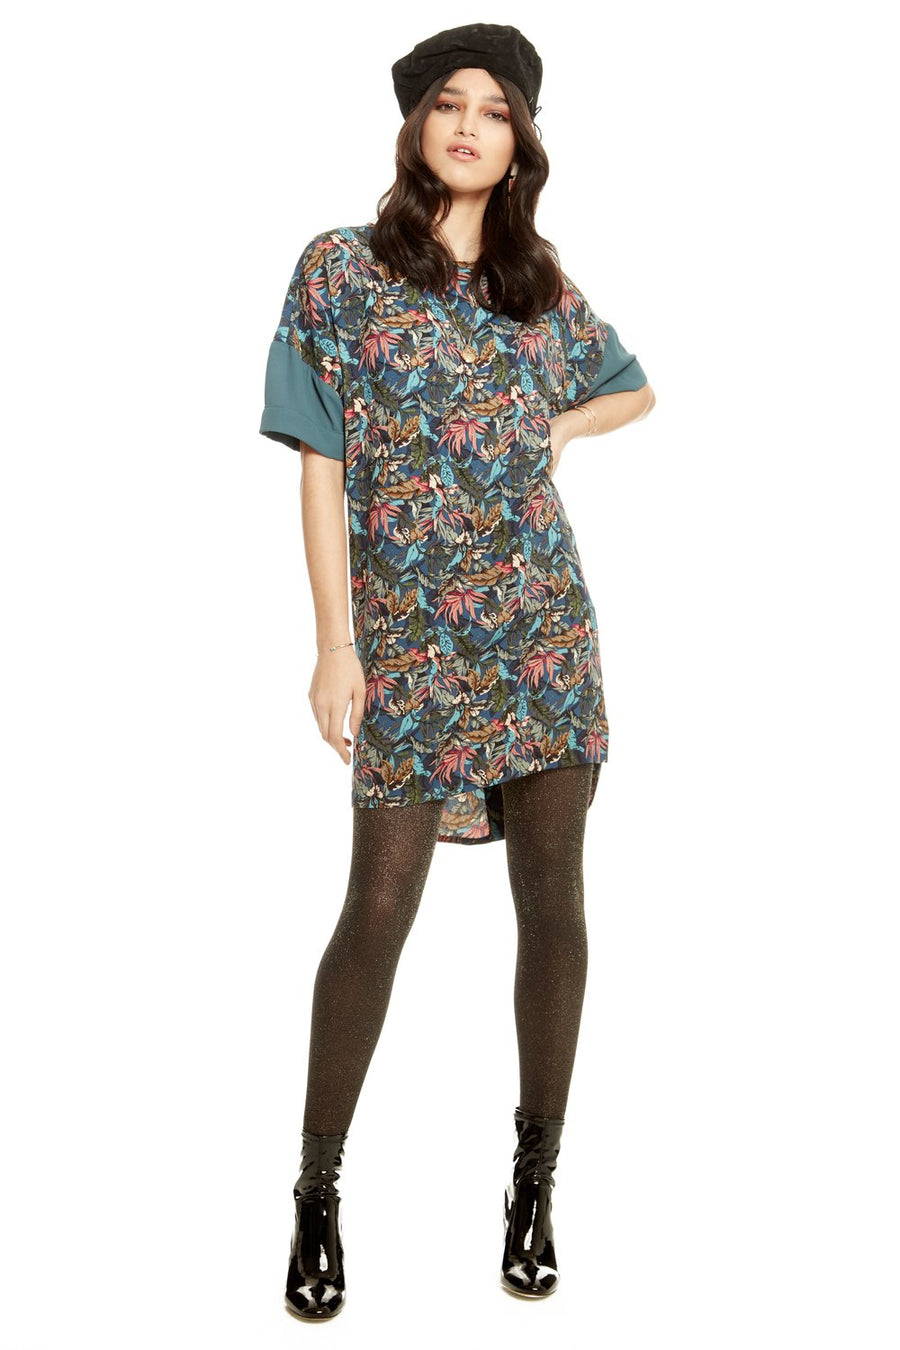 Robe Mixed-up Girl feuillage d'Annie 50